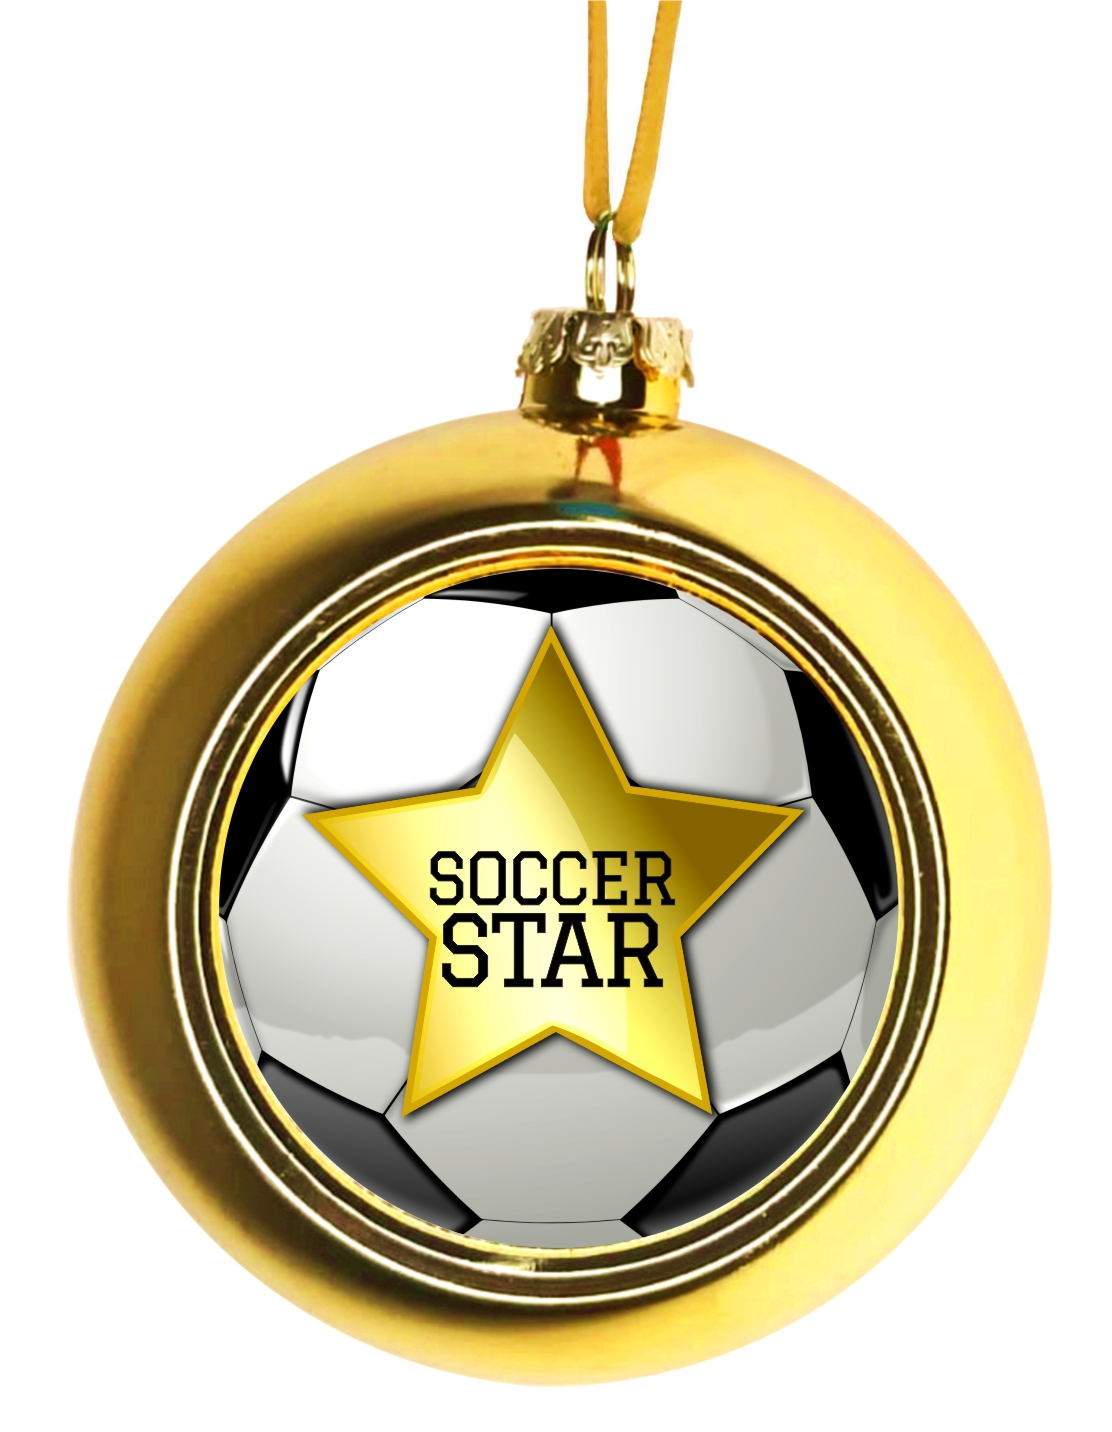 Soccer Christmas Ornaments - Ornament Christmas Décor ...